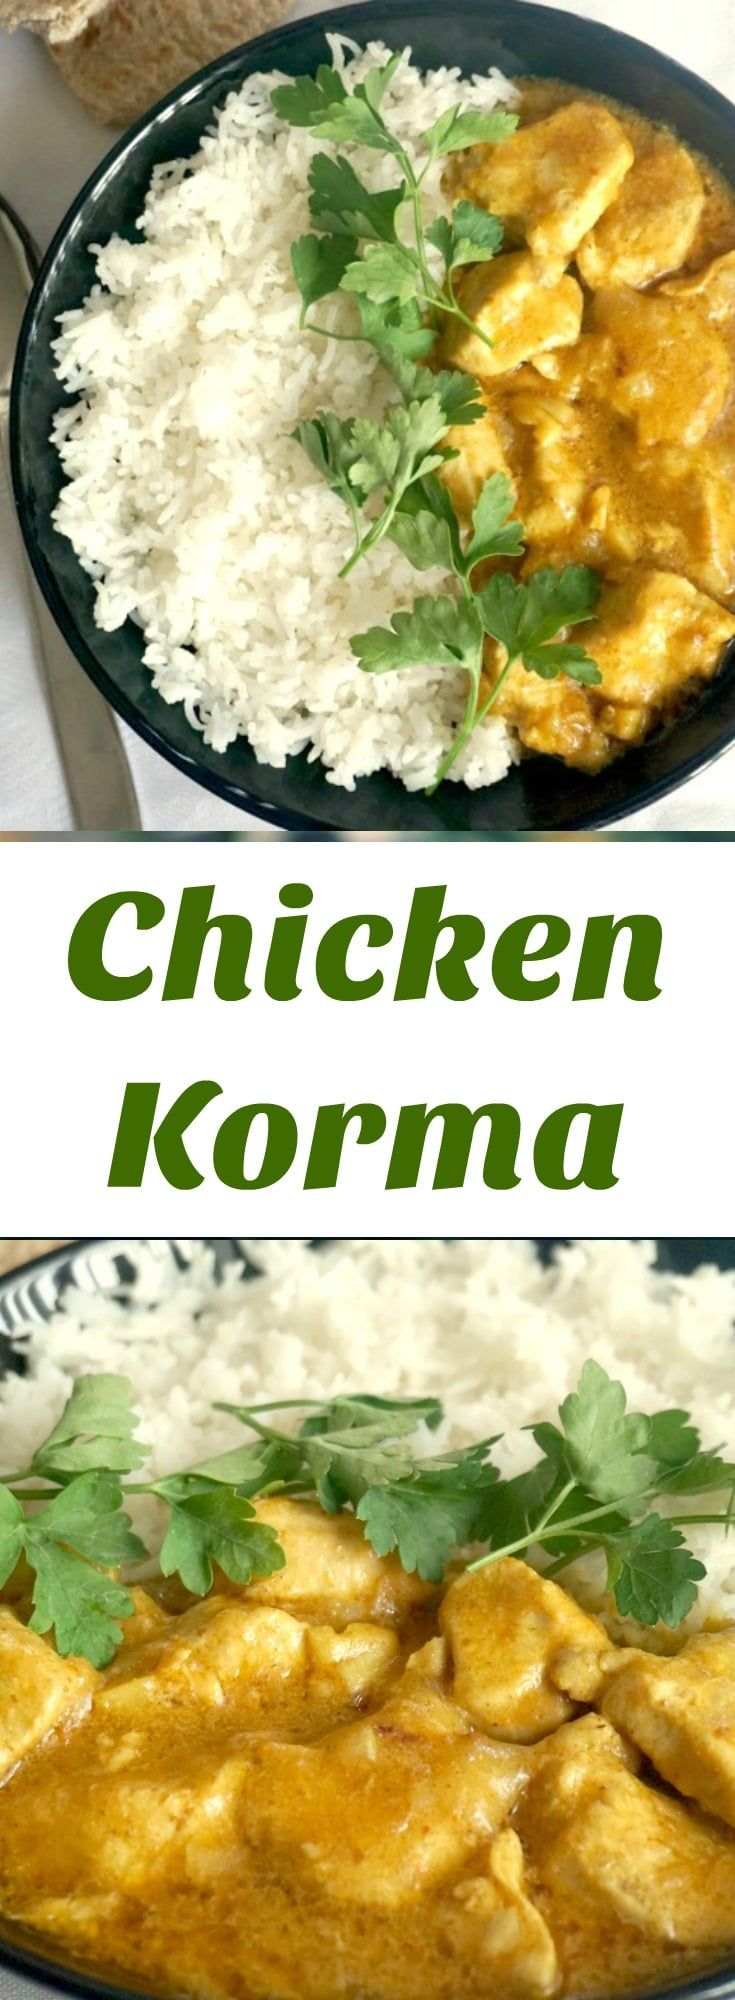 Chicken Korma, one of the most delicious Indian curry recipes. The coconut milk and ground almonds bring so much flavour to this dish, making it a favourite recipe for a family dinner.